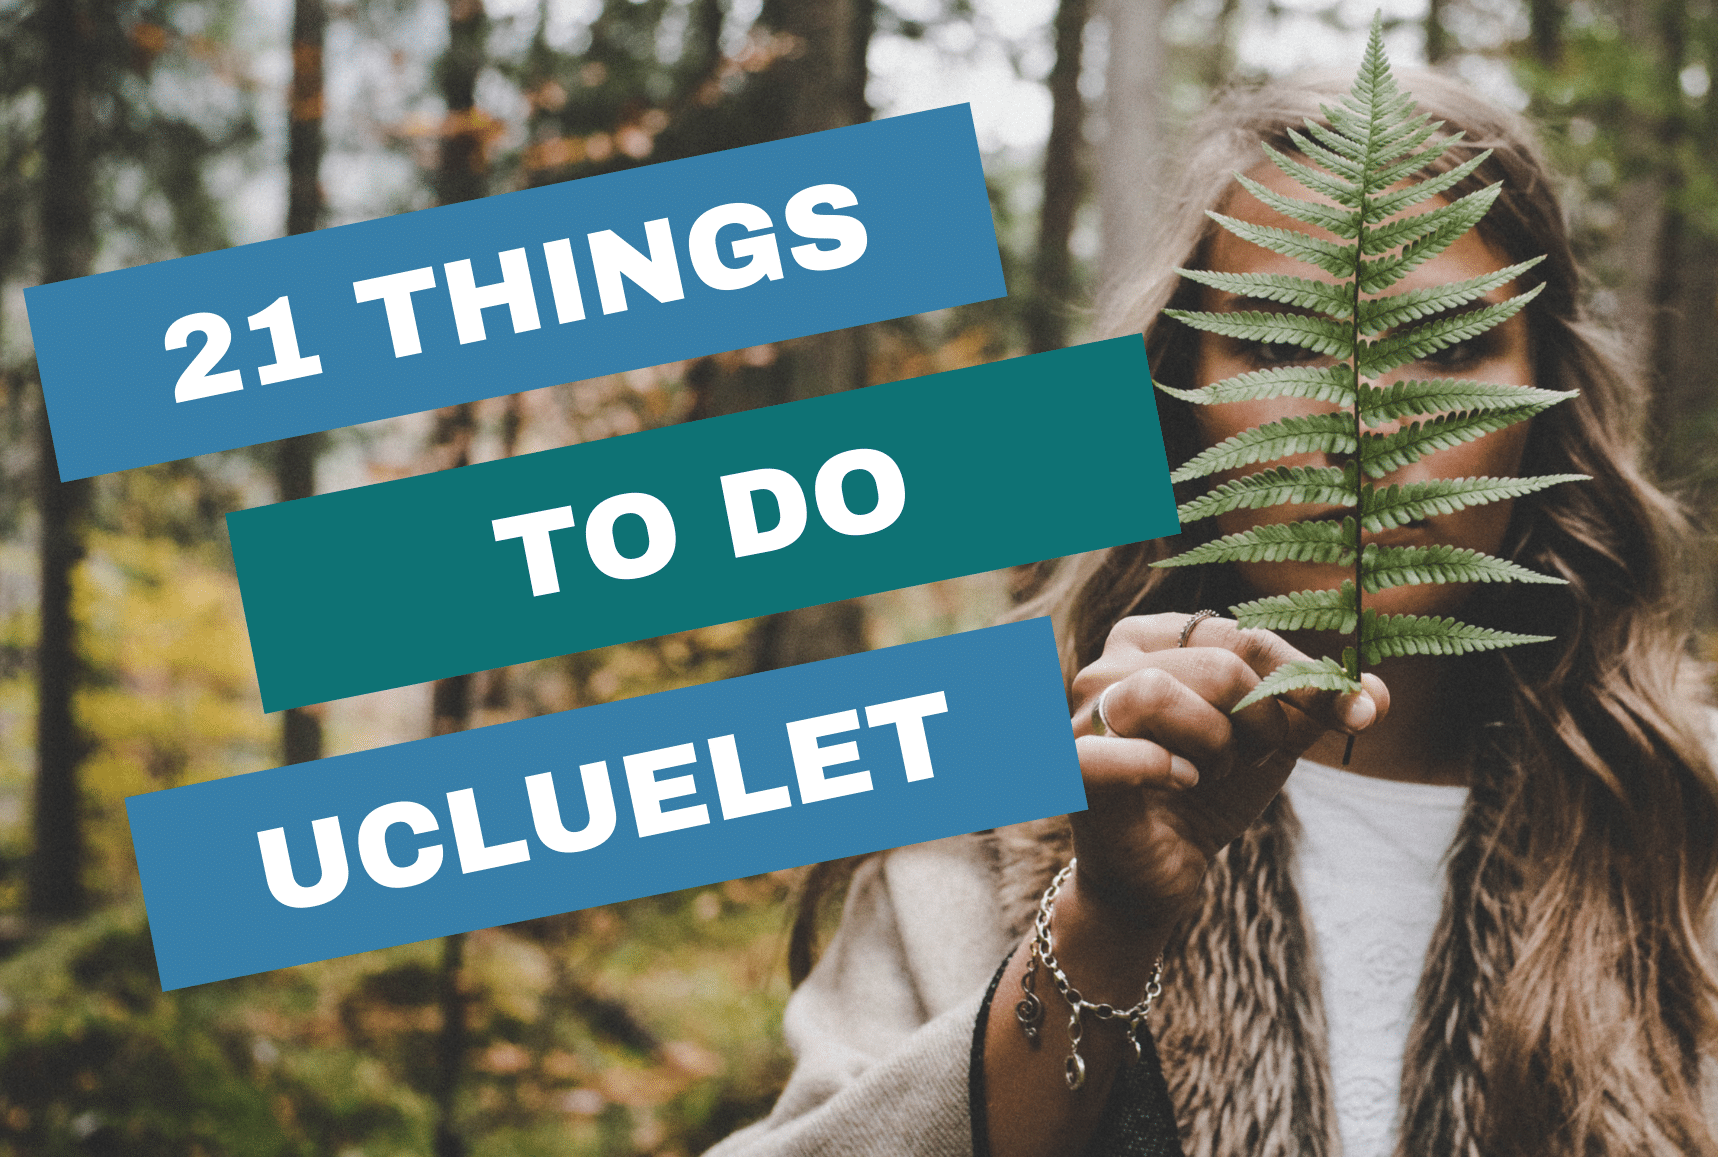 21 things to do in ucluelet